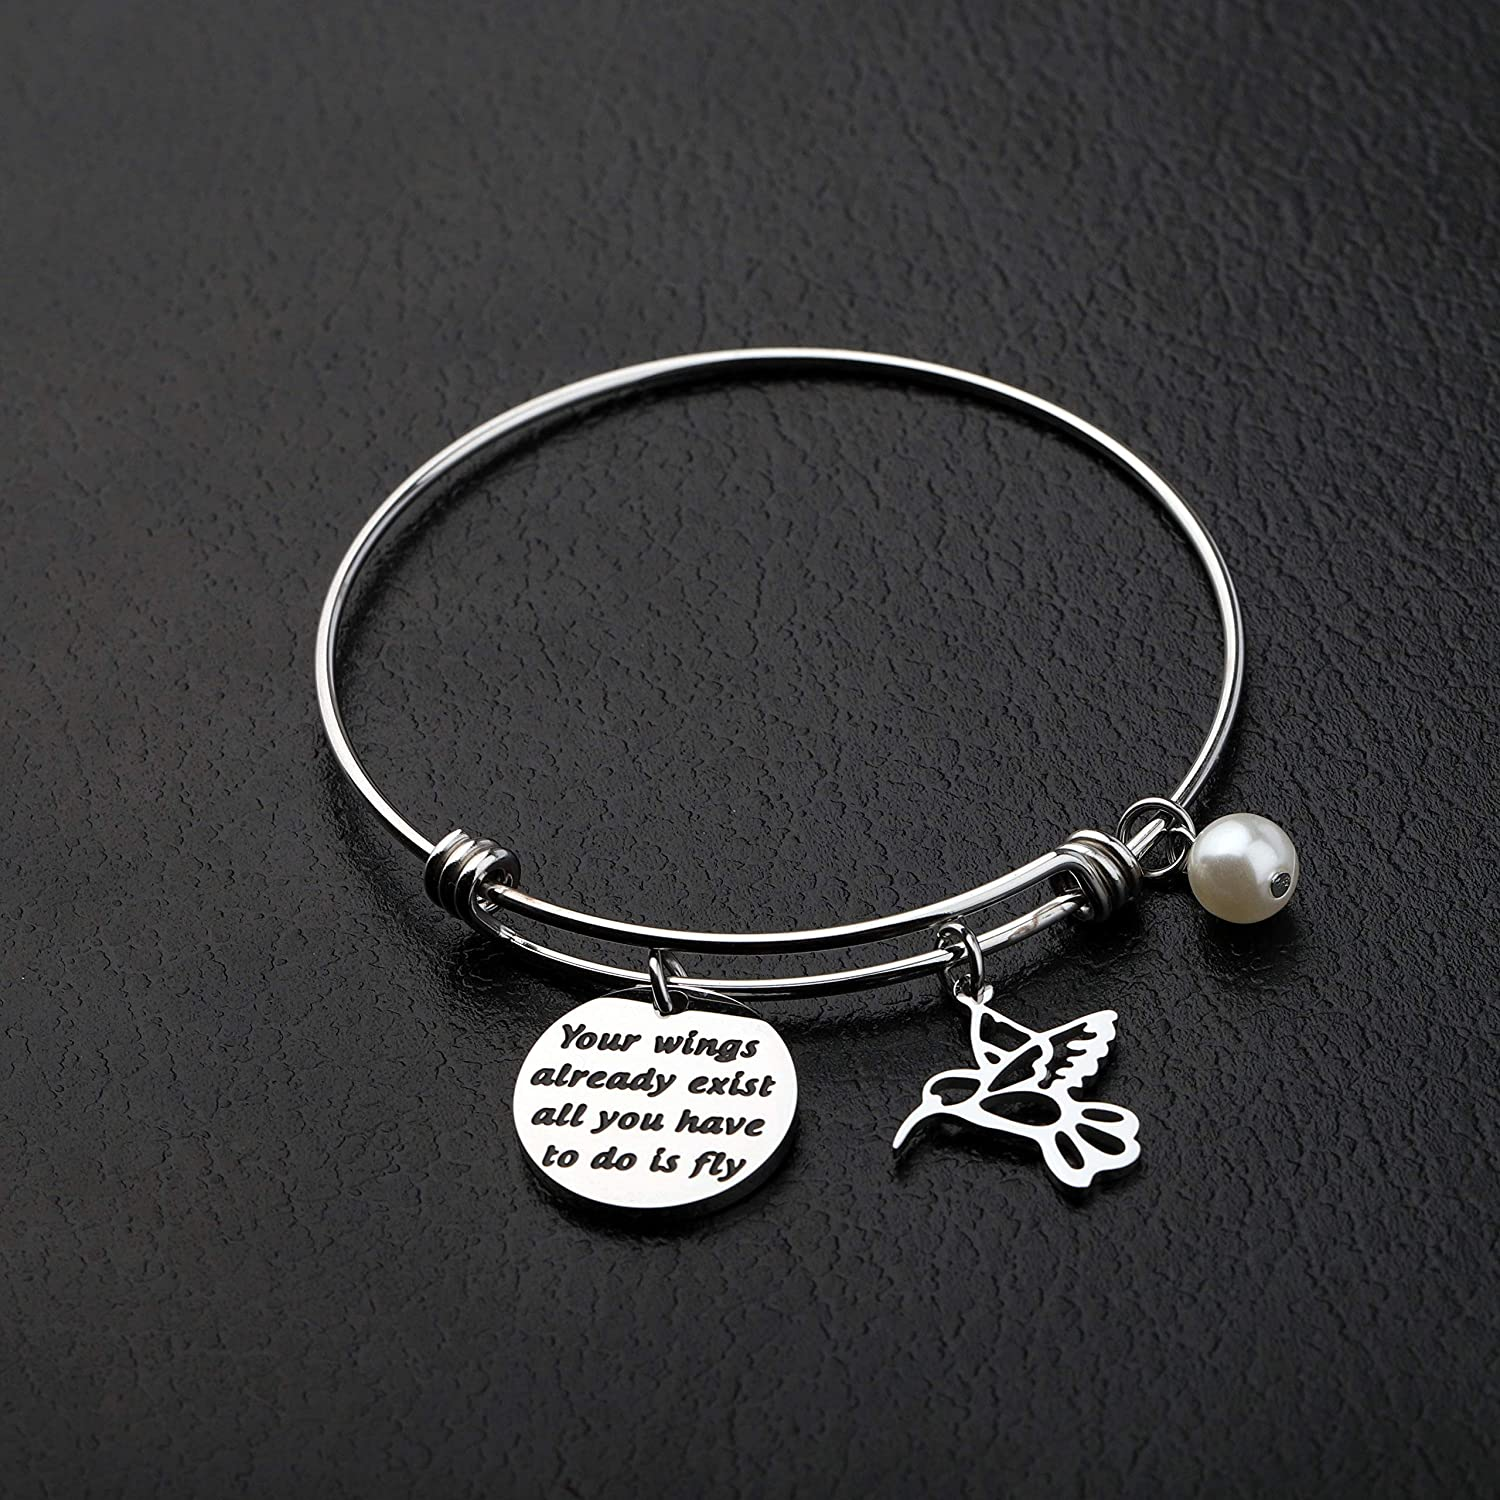 Inspirational Bracelets Your Wings Already Exist All You Have to do is Fly Hummingbird Charm Bangle Bracelet